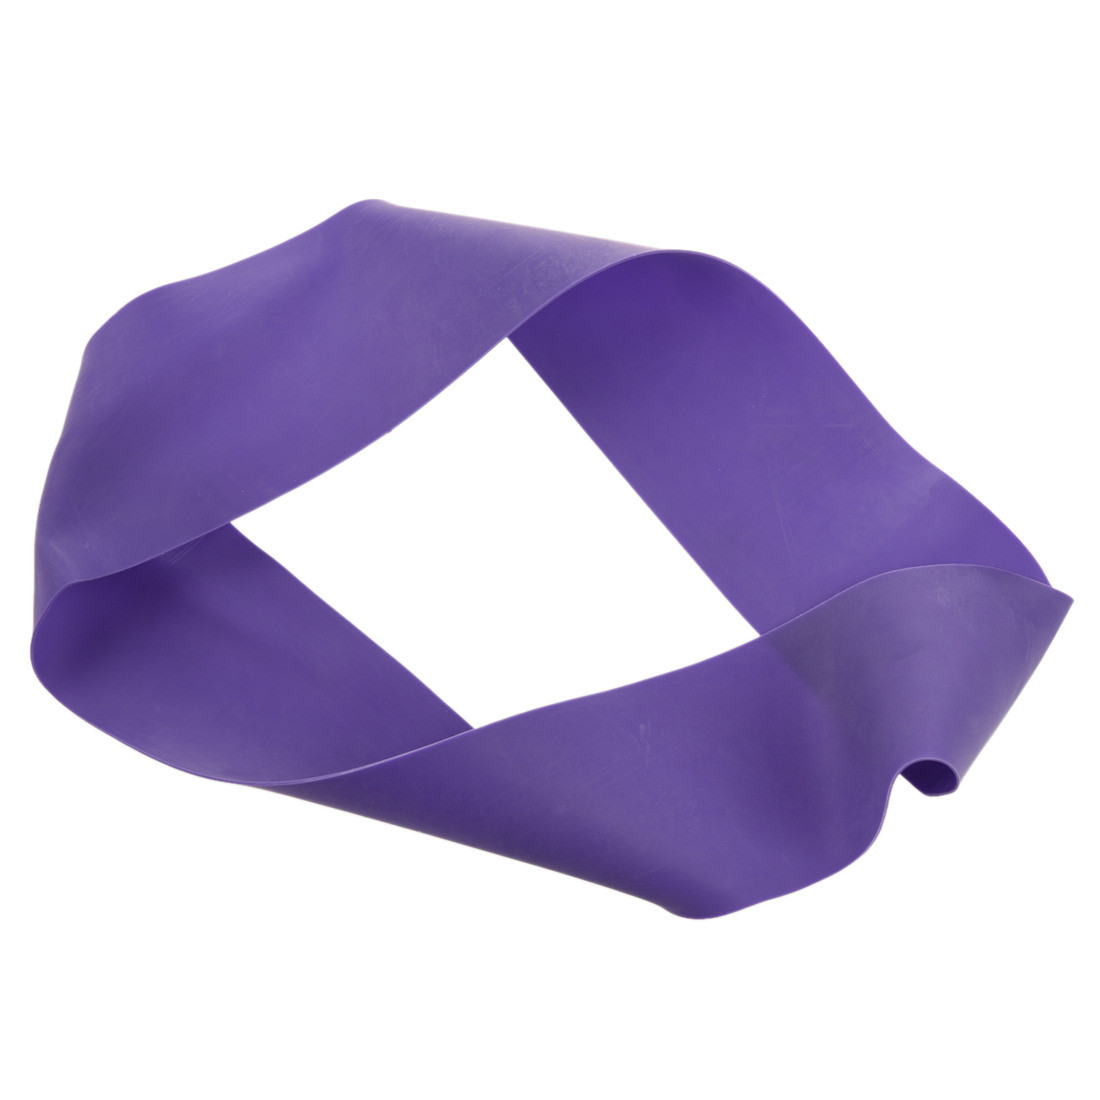 Training Exercise Bands 12 Wrist / Ankle - Purple ...